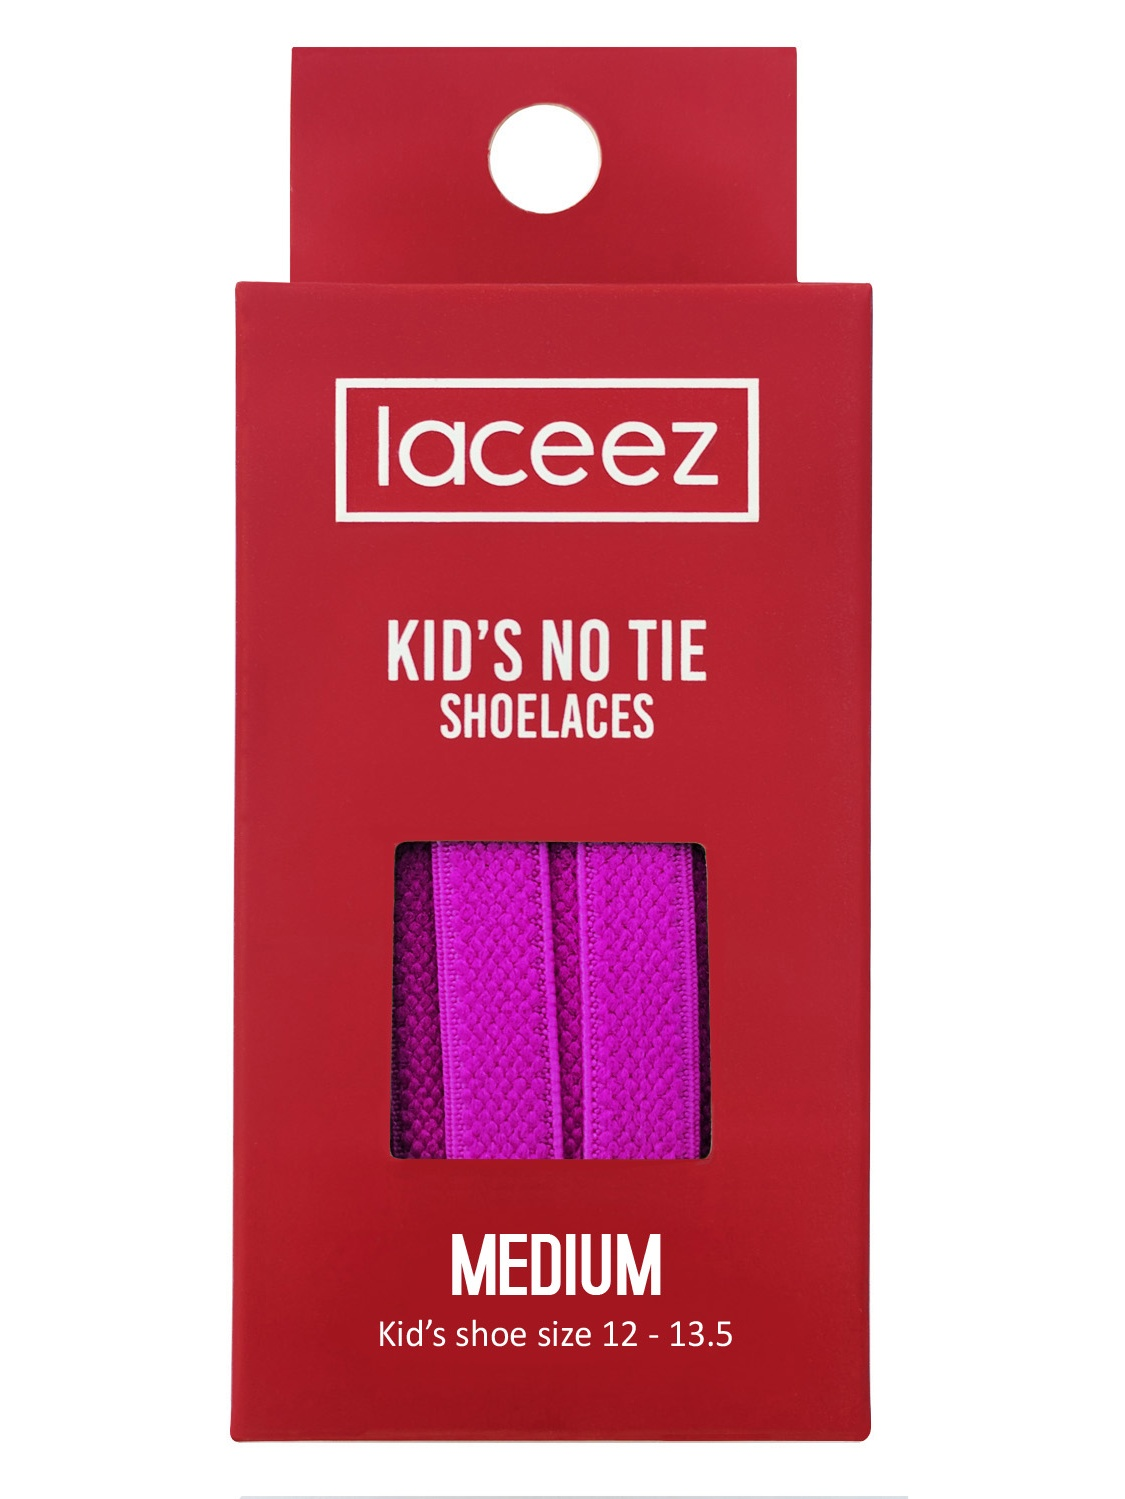 300a5c4f8618 Laceez - Laceez Kids No Tie Shoelaces - Flat Elastic Laces by the Size for  all Casual Athletic Lifestyle Sneakers - Walmart.com